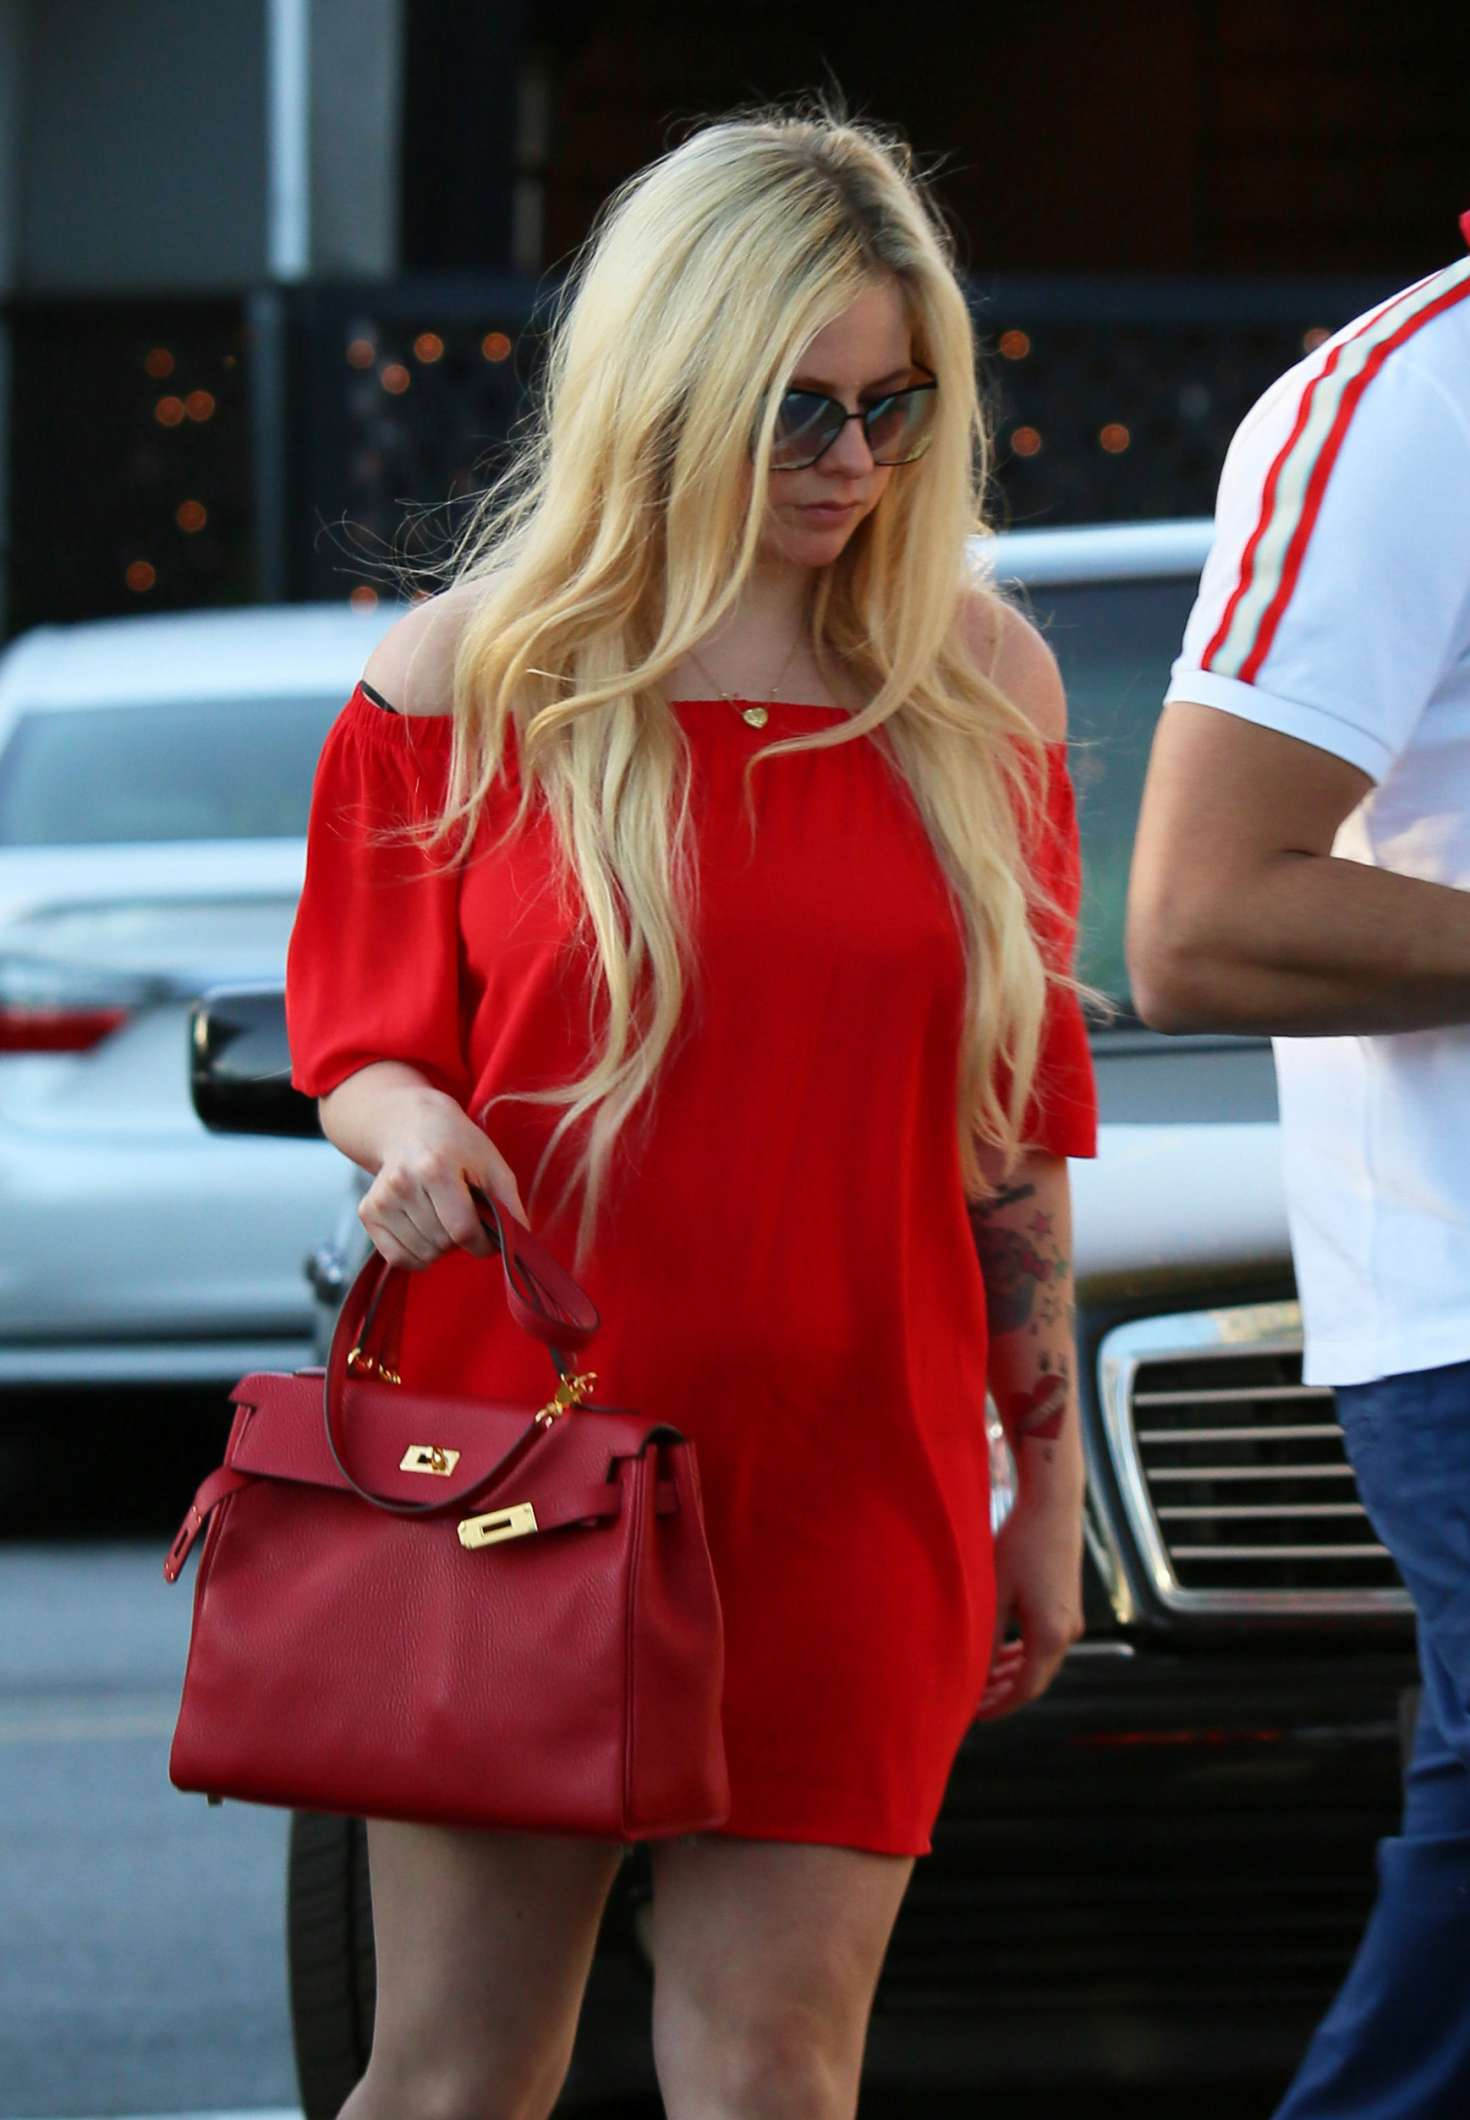 Avril Lavigne in Red out in LA